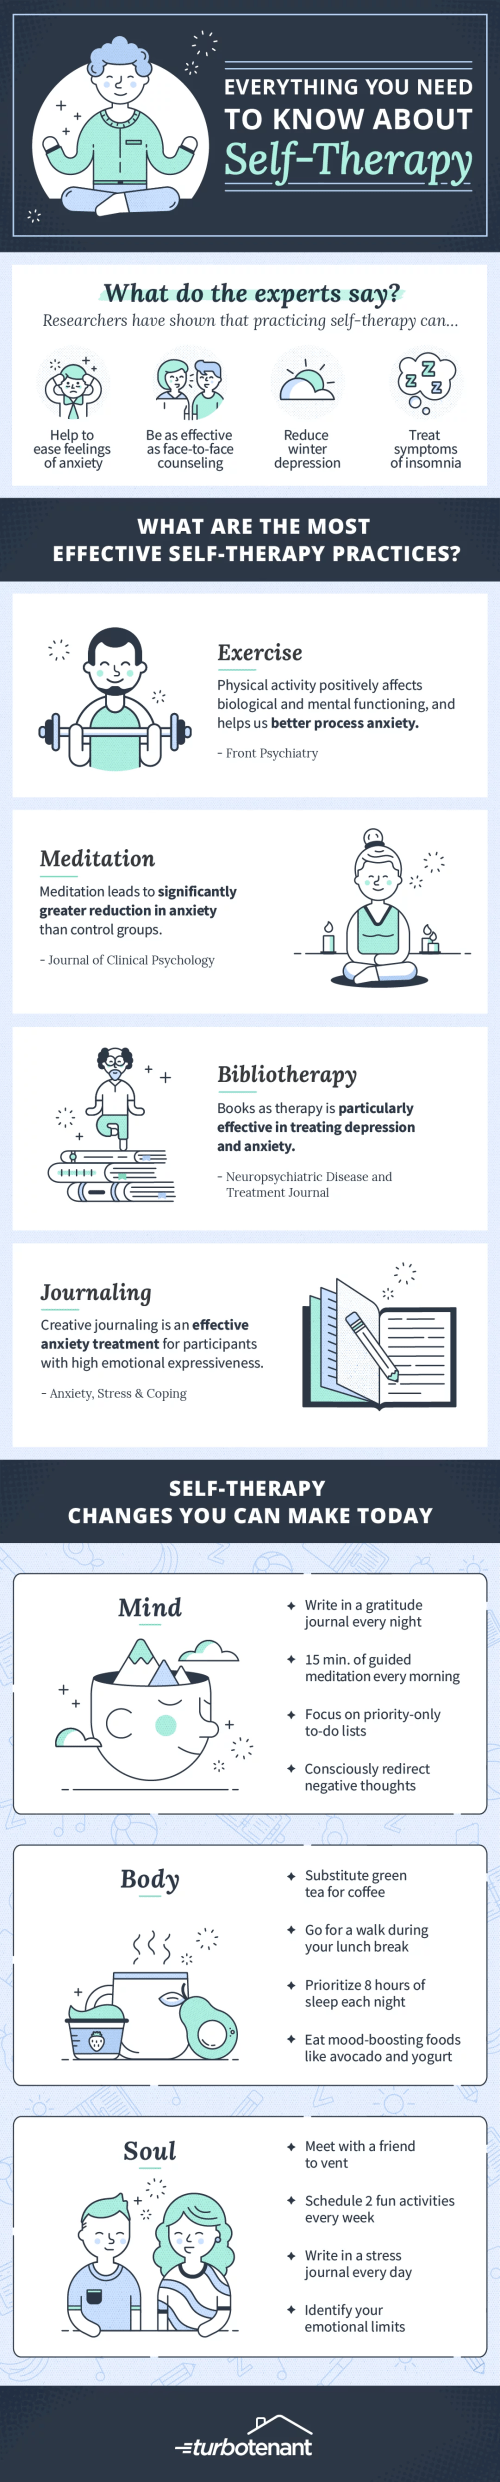 Everything You Need to Know About Self-Therapy